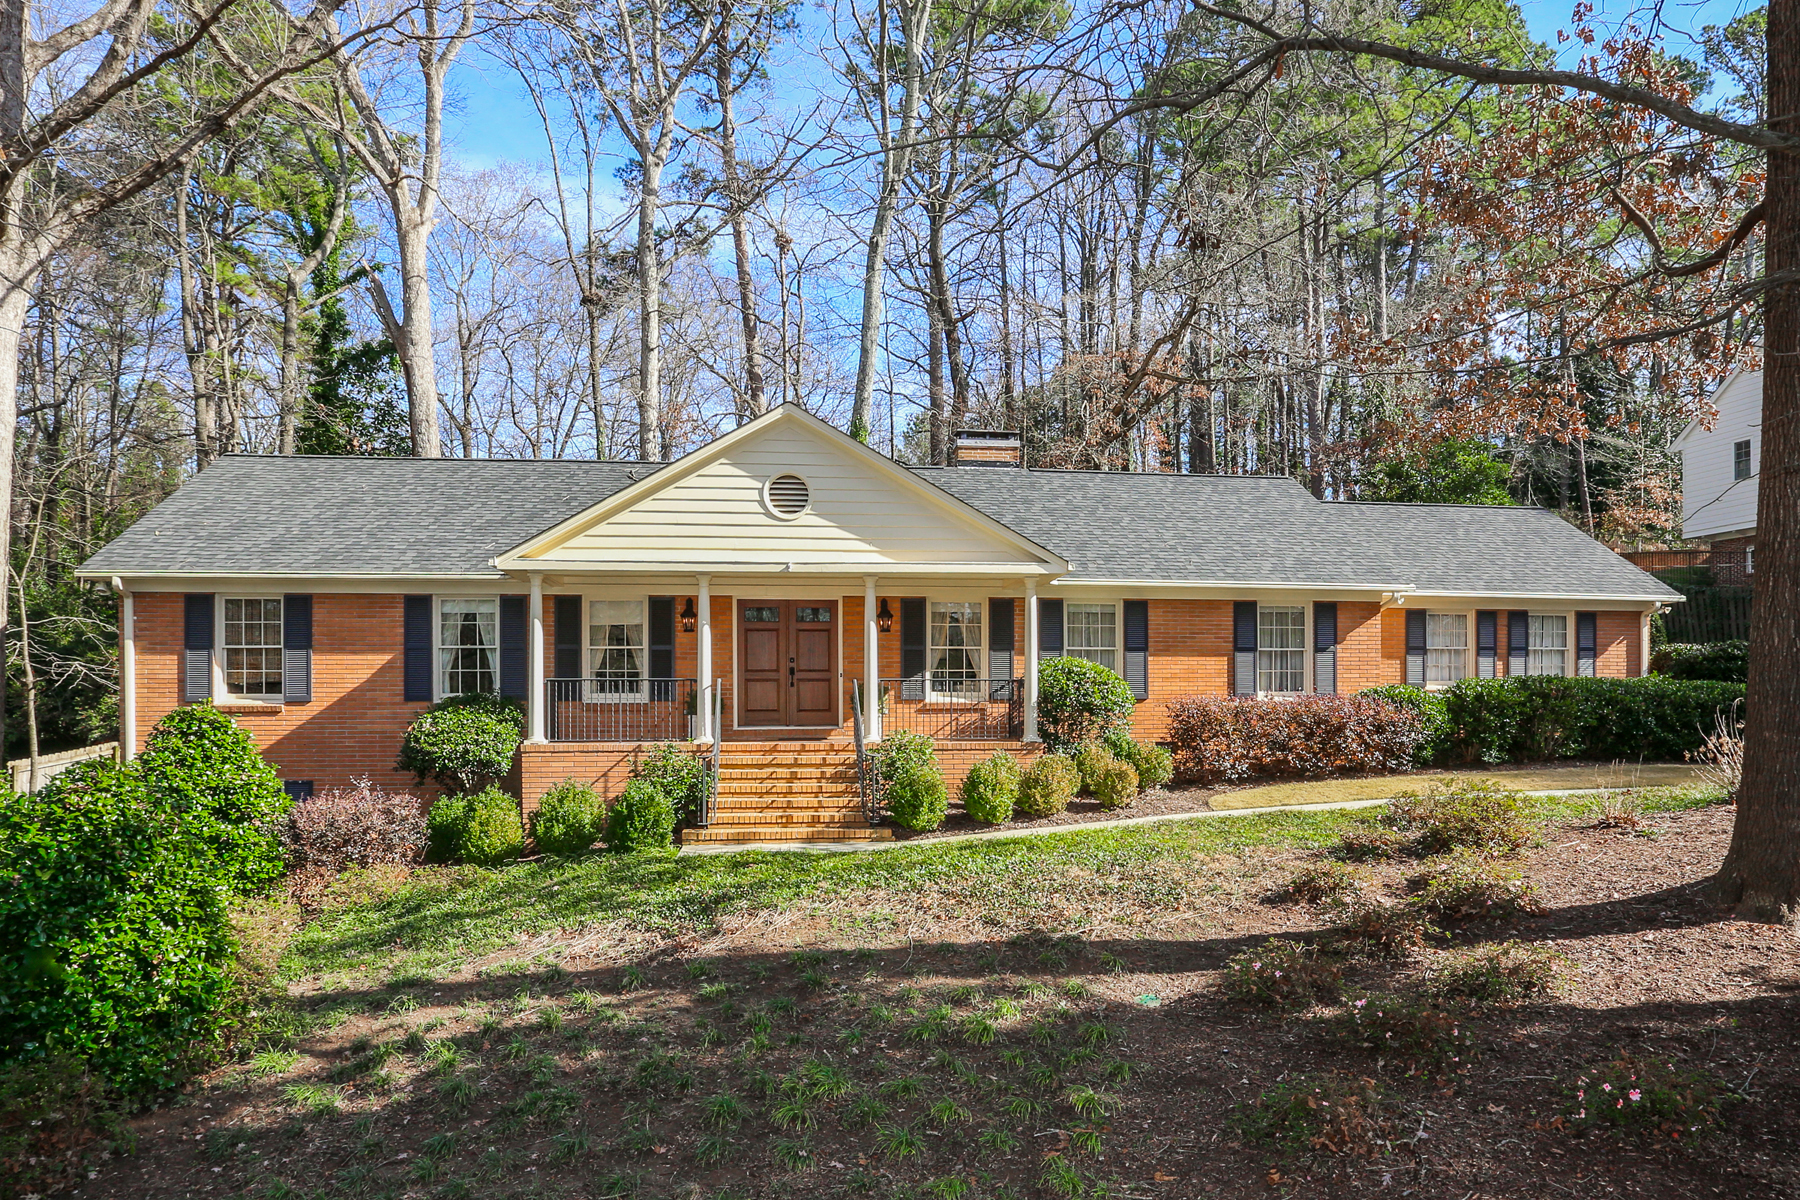 Single Family Home for Sale at Best Value In Sarah Smith 4325 Mcclatchey Circle NE Atlanta, Georgia 30342 United States